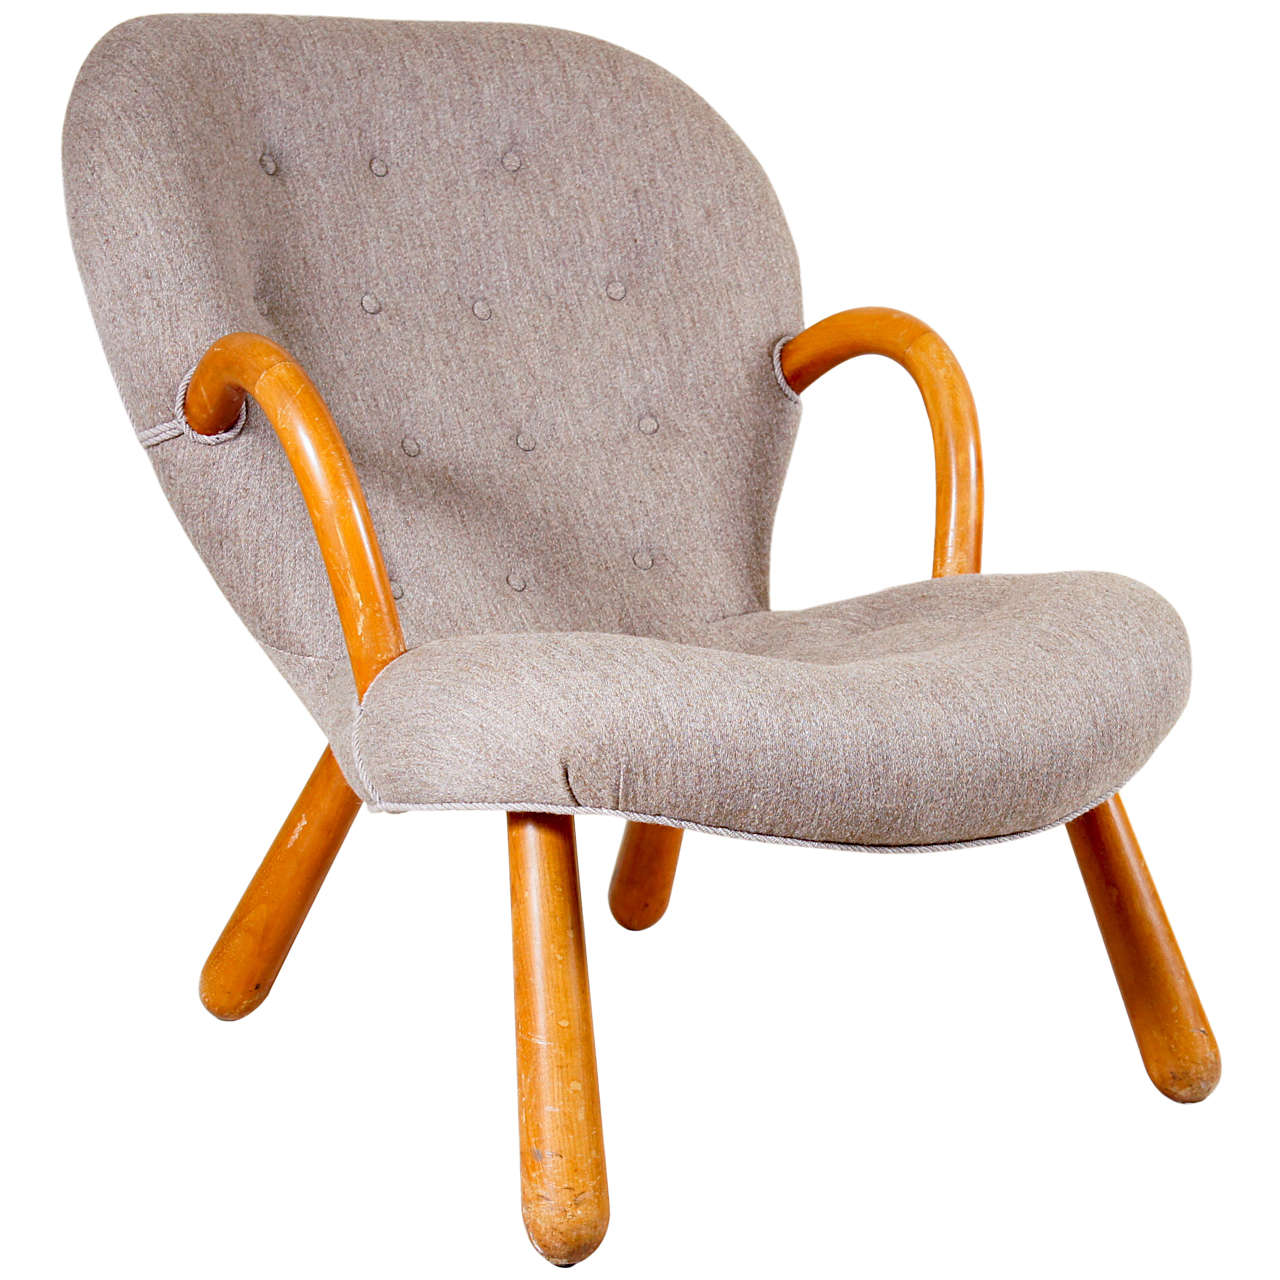 Clam shell chair